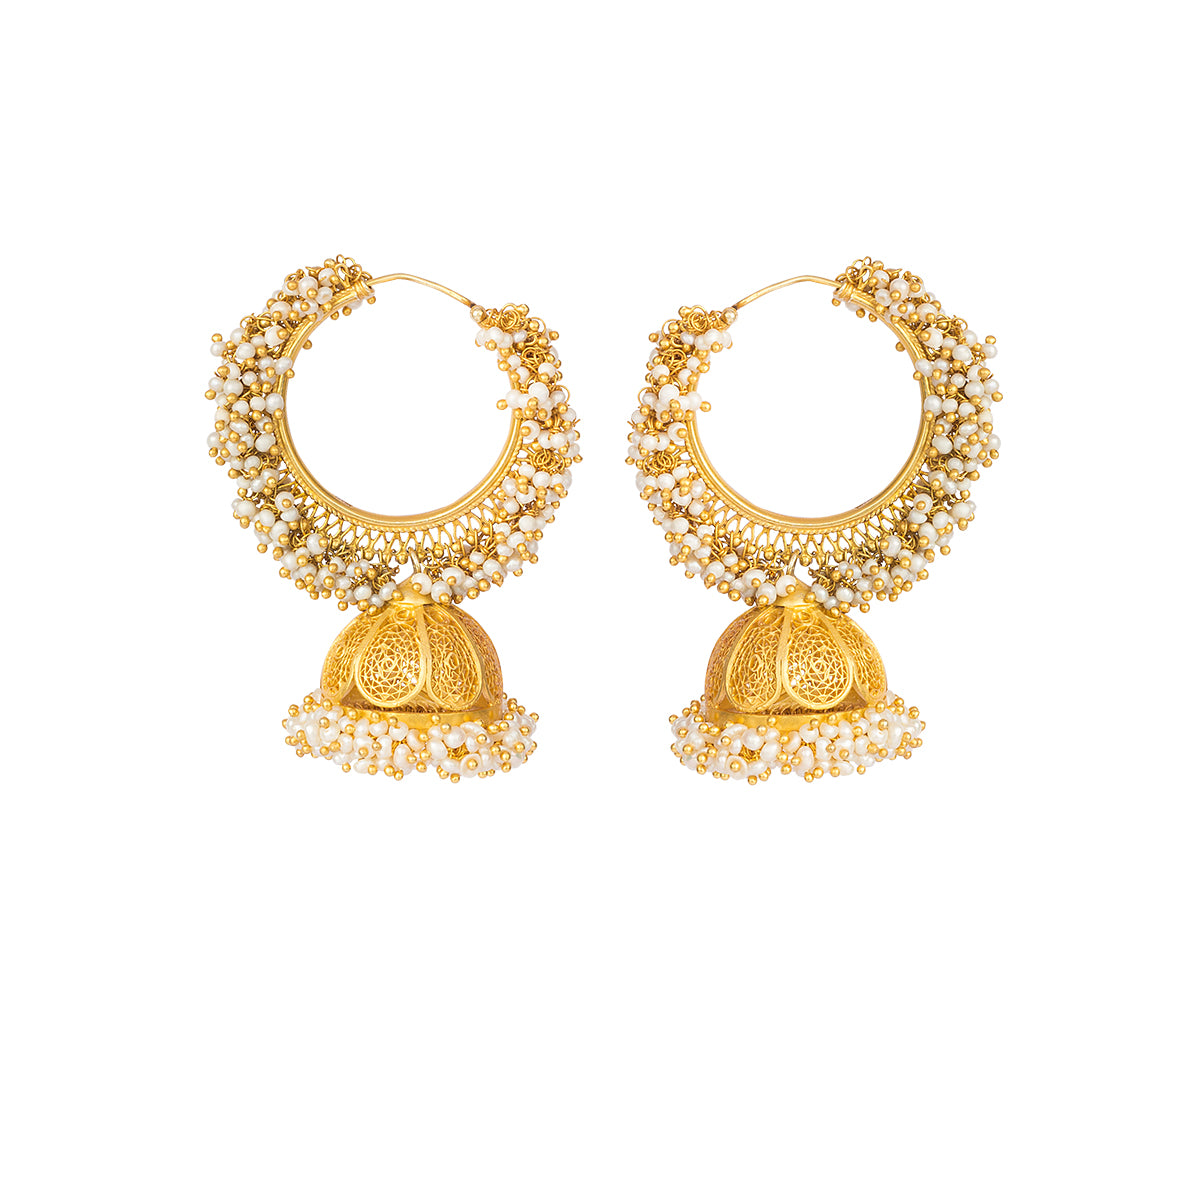 Saved for a special occassion and sealed with love, these gold-plates silver earrings are decorated with pearls in a hoop & jhumka design. They remind us of the golden days and eternal love!